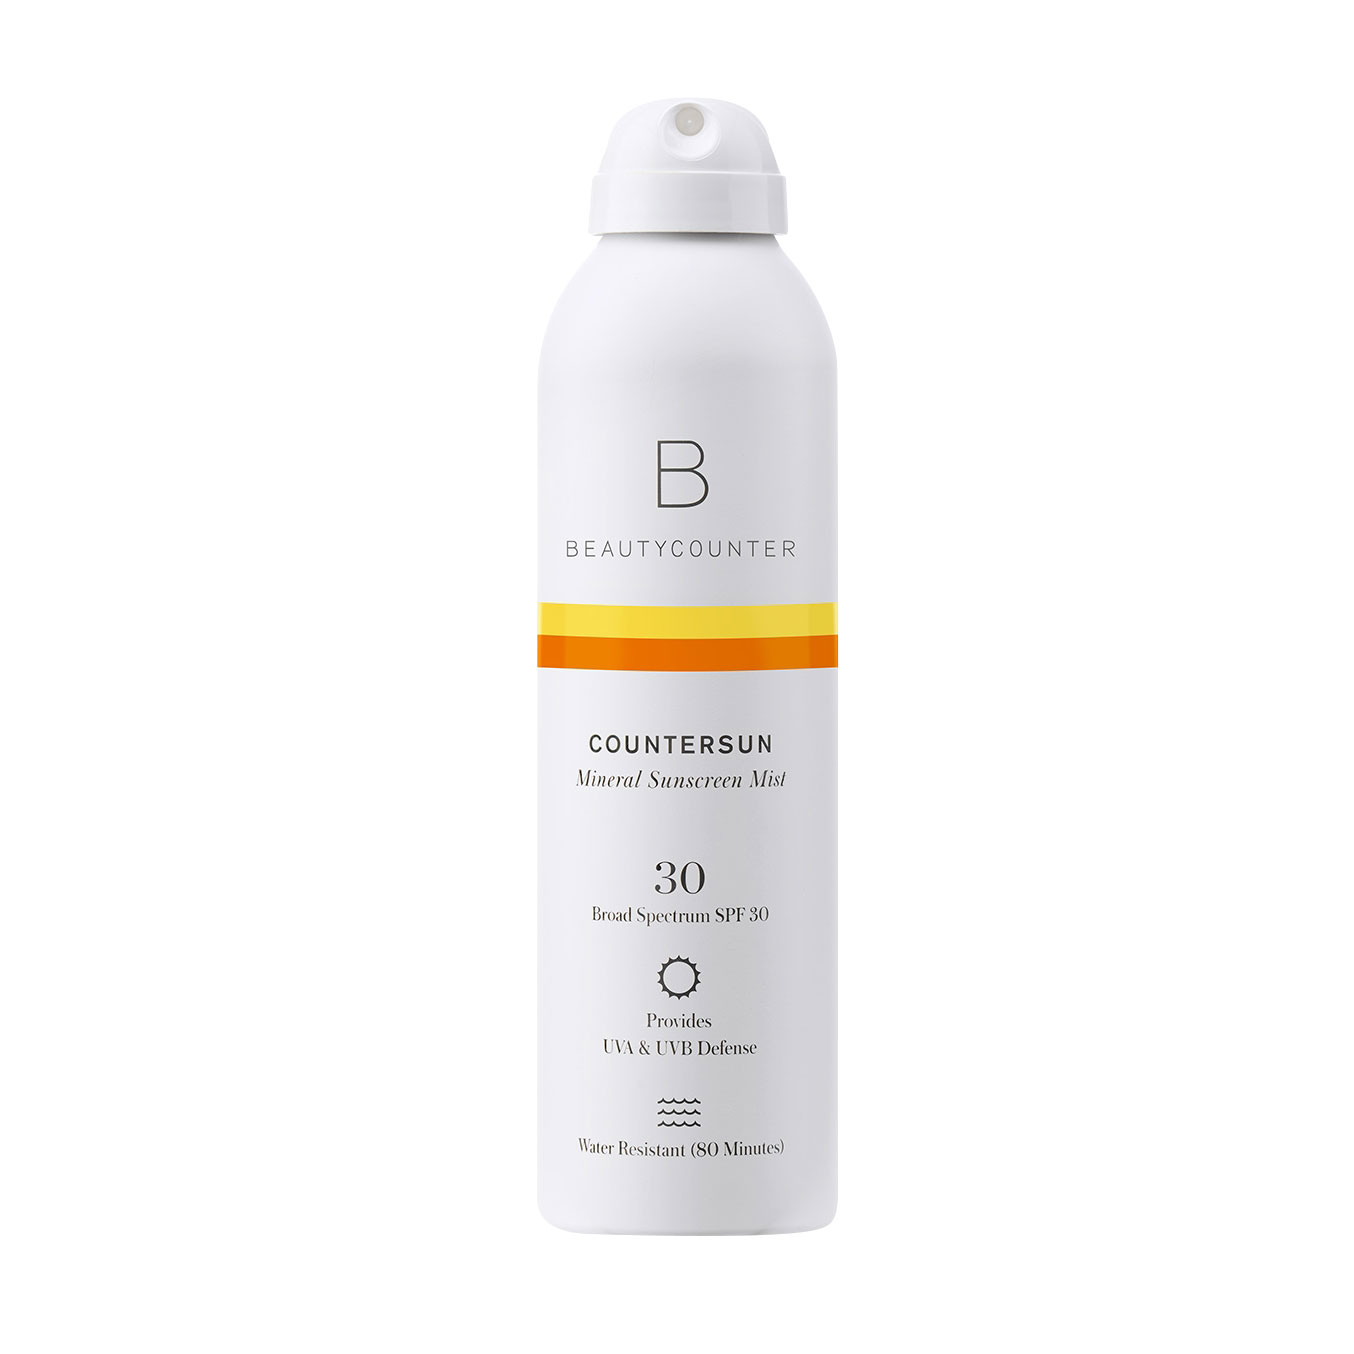 IF YOU'RE LAZY: Beautycounter Countersun Mineral Sunscreen Mist